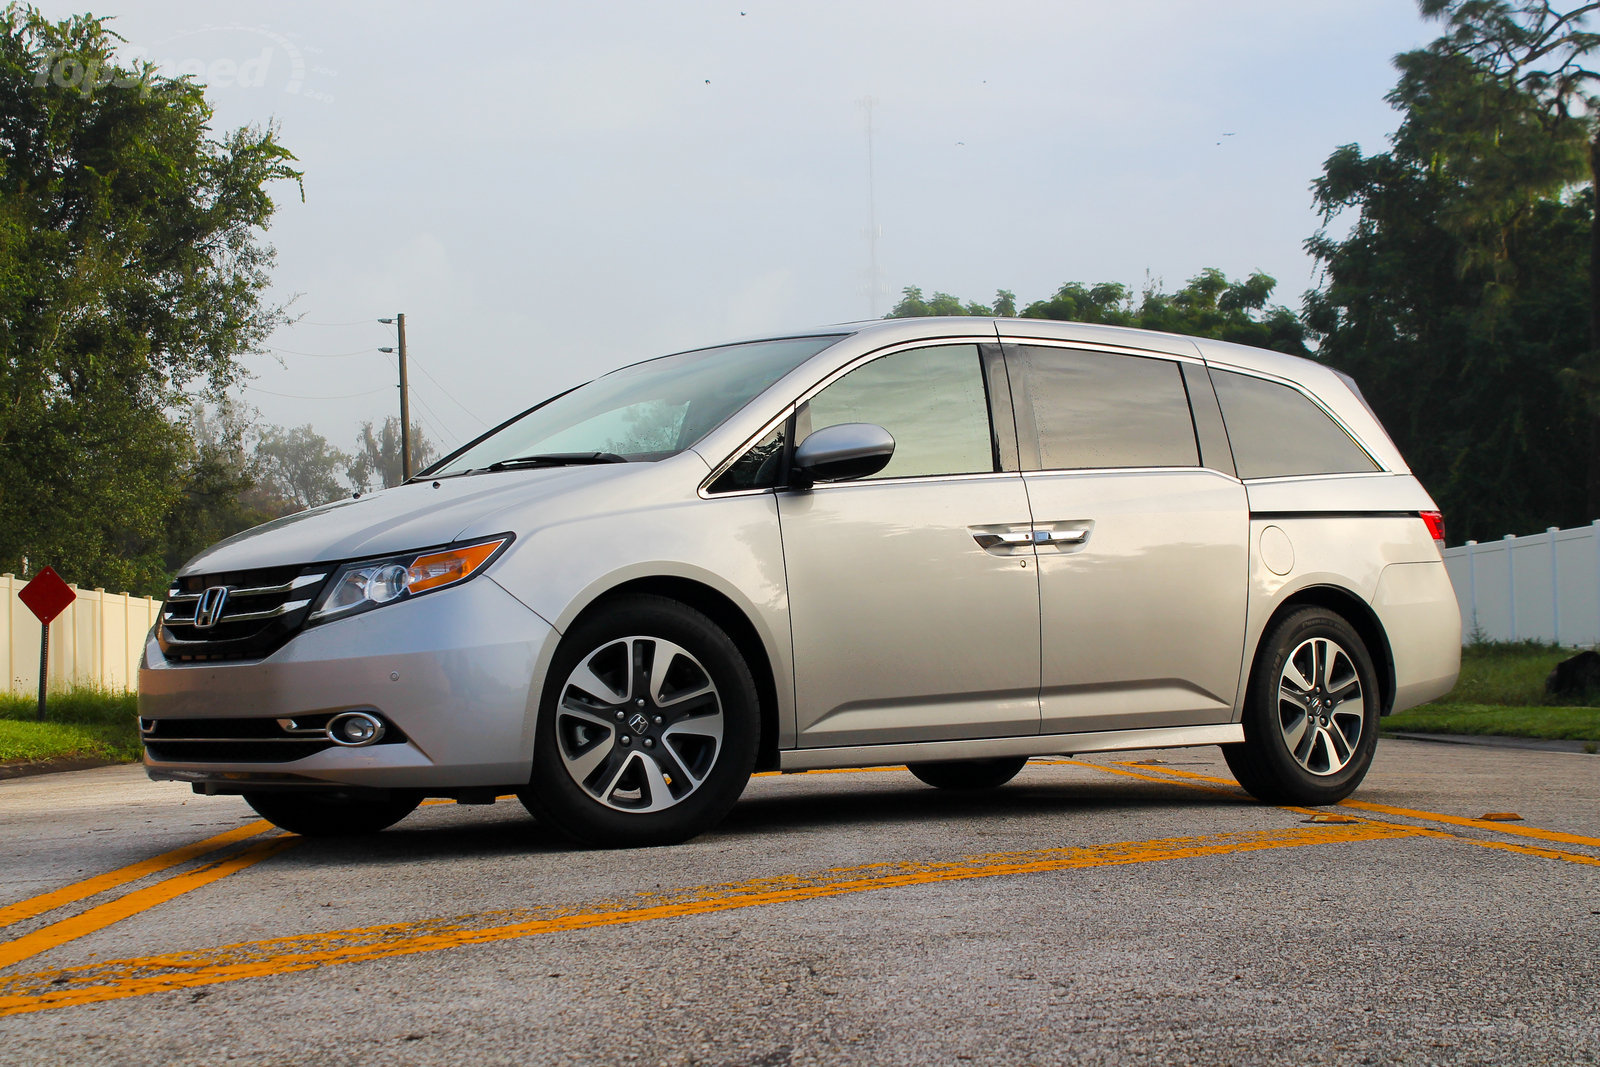 2015 honda odyssey touring elite driven picture 570685 car review top speed. Black Bedroom Furniture Sets. Home Design Ideas